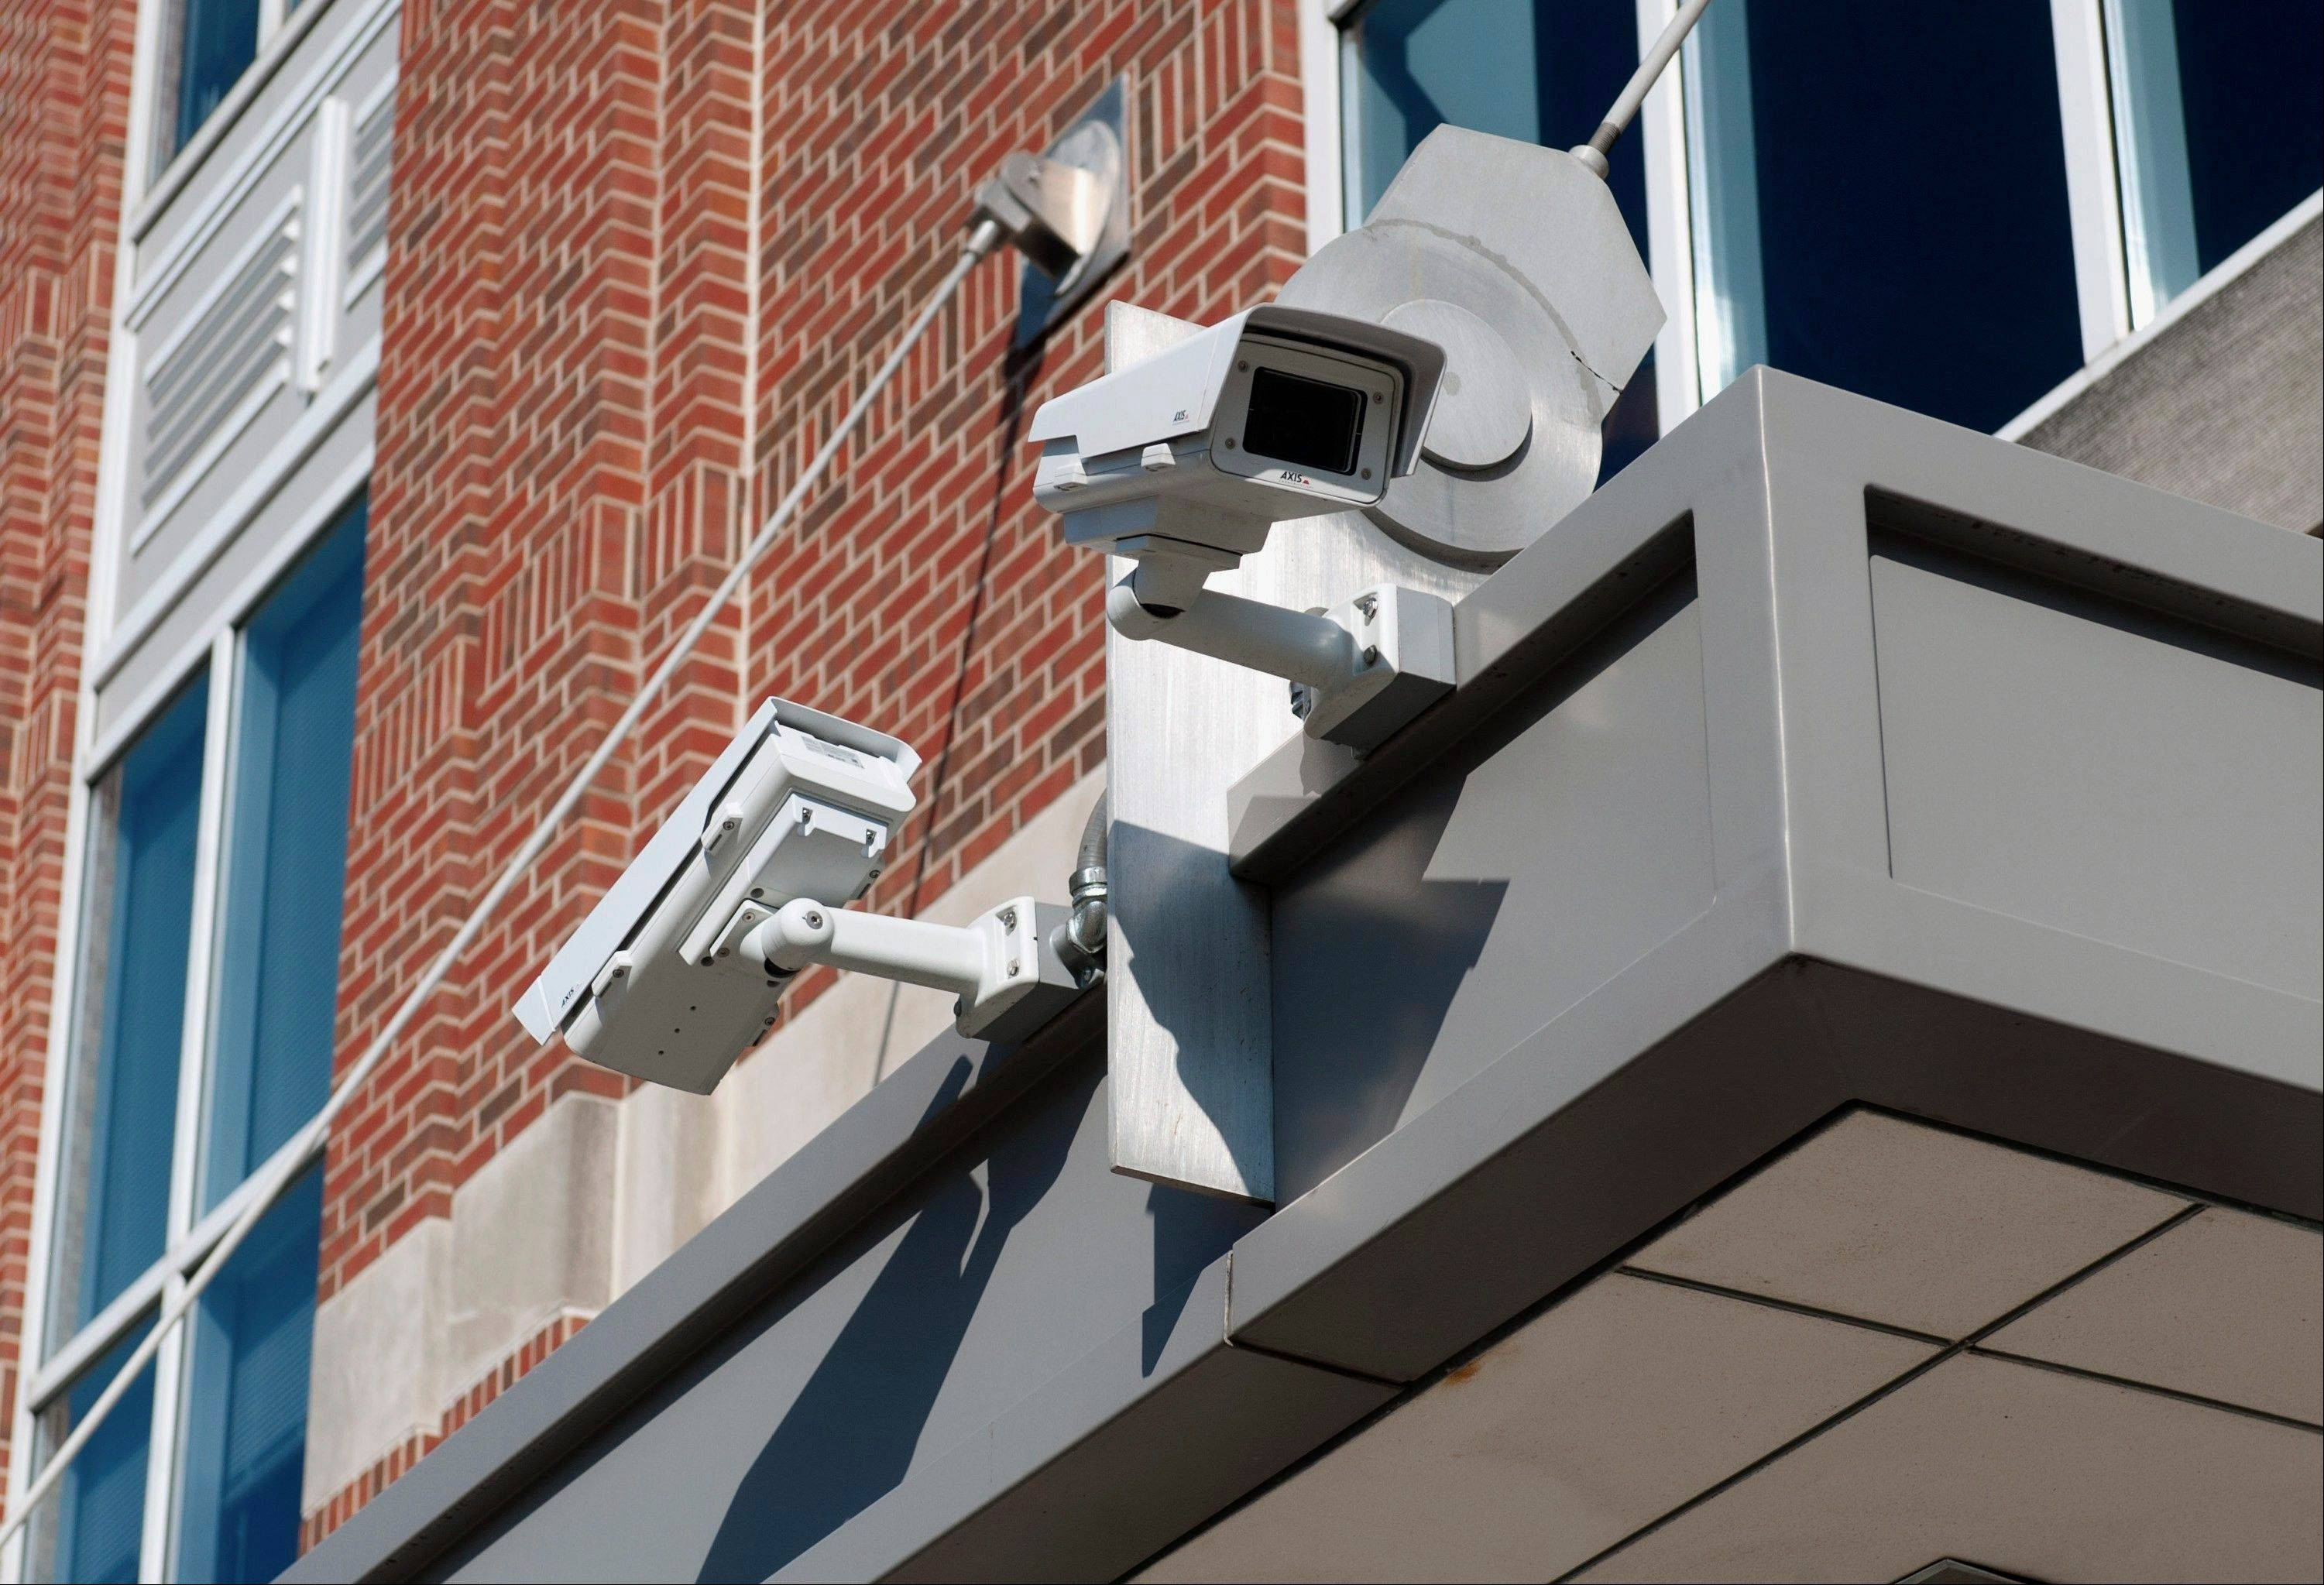 Surveillance cameras are mounted outside of the Illini Union Bookstore in Champaign. The campus had 13 surveillance cameras in 2008. Now the number is at 900.